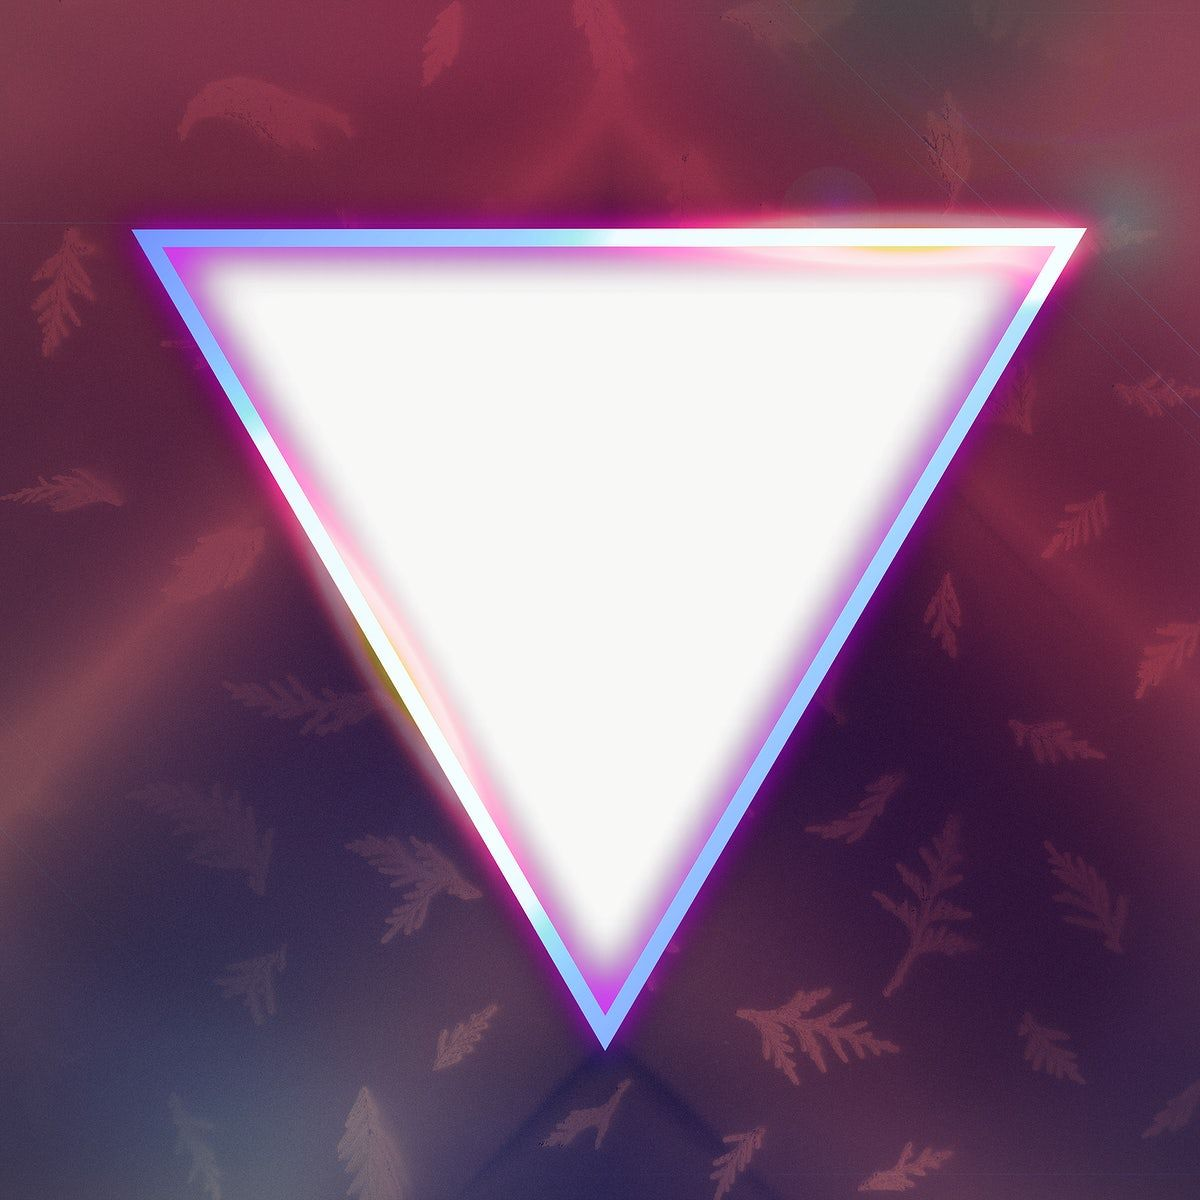 Neon Glowing Triangle Frame Design Element Free Image By Rawpixel Com Frame Design Design Element Triangle